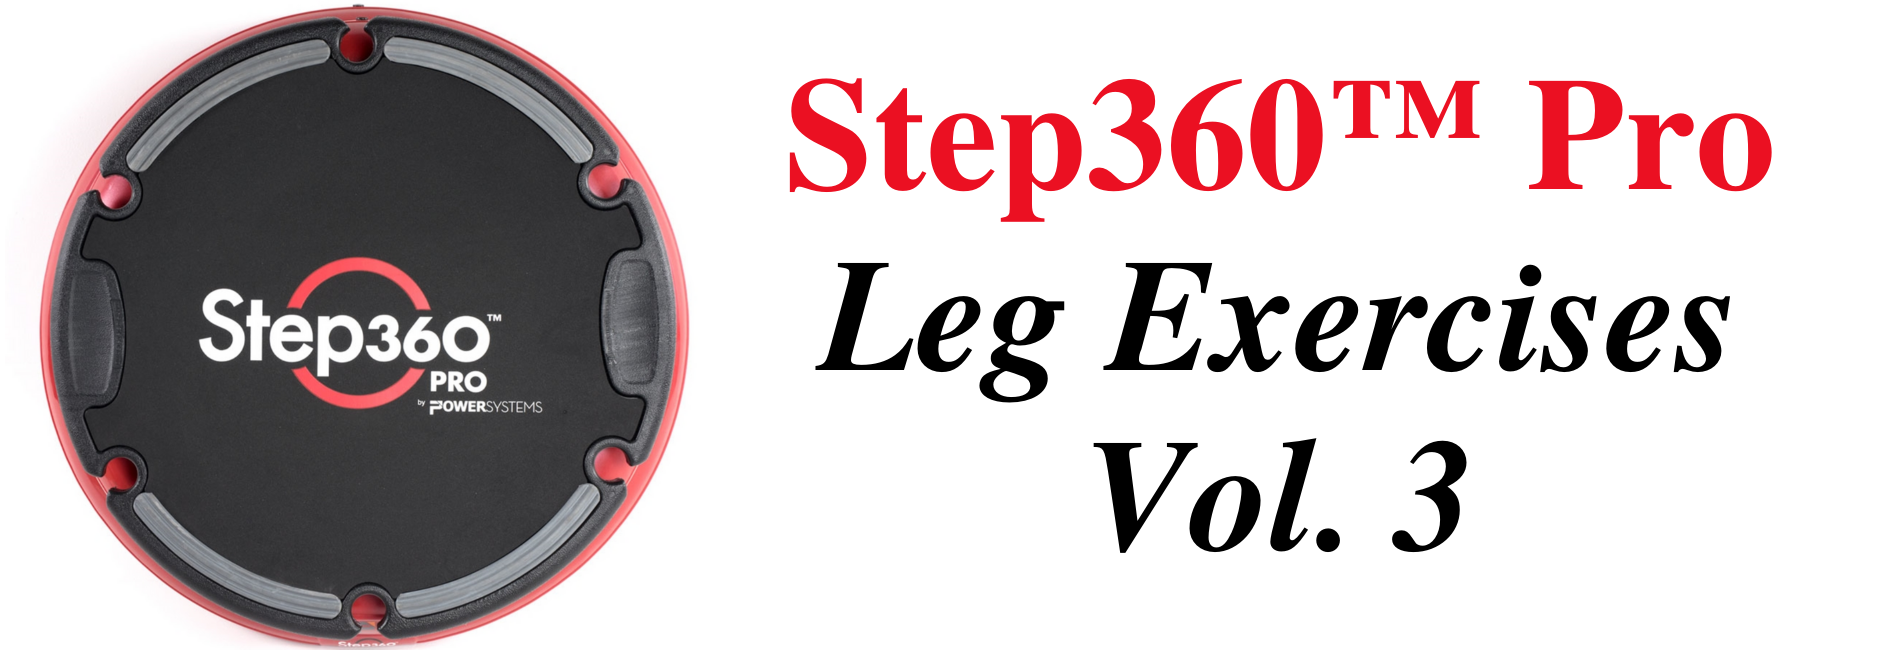 Learn fun Leg Exercises using these easy & quick GIFs.